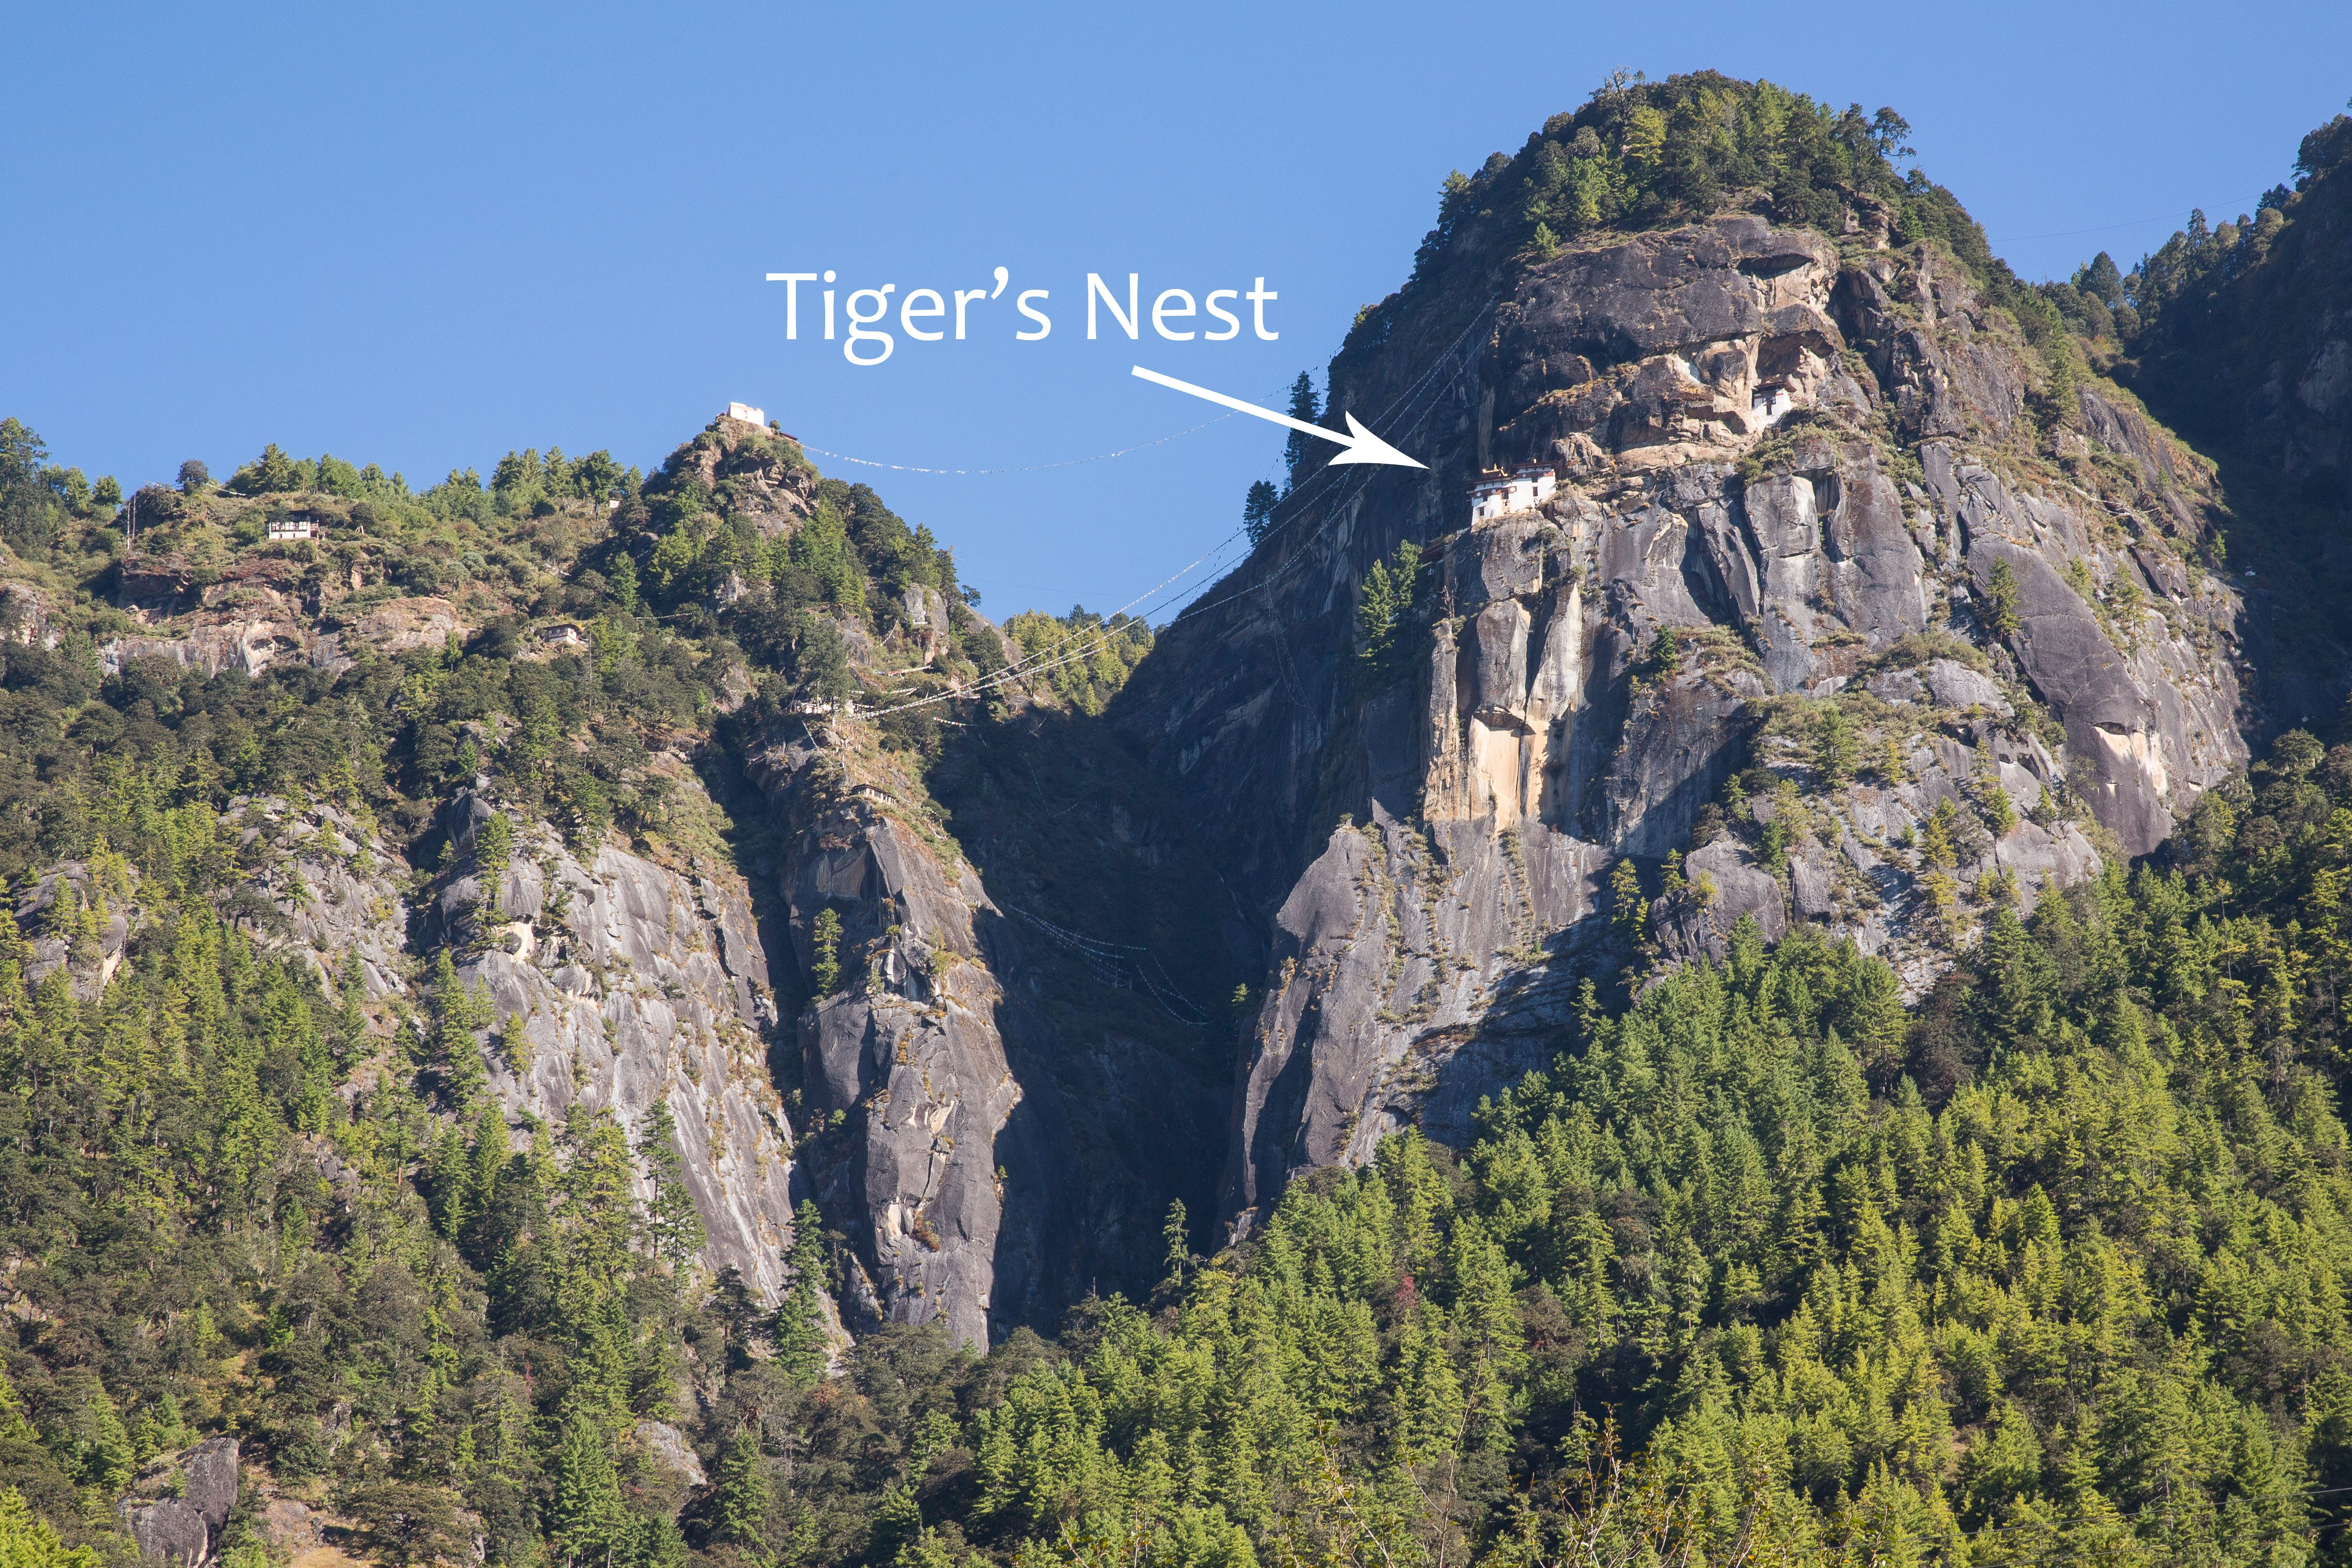 Tiger's Nest from Below